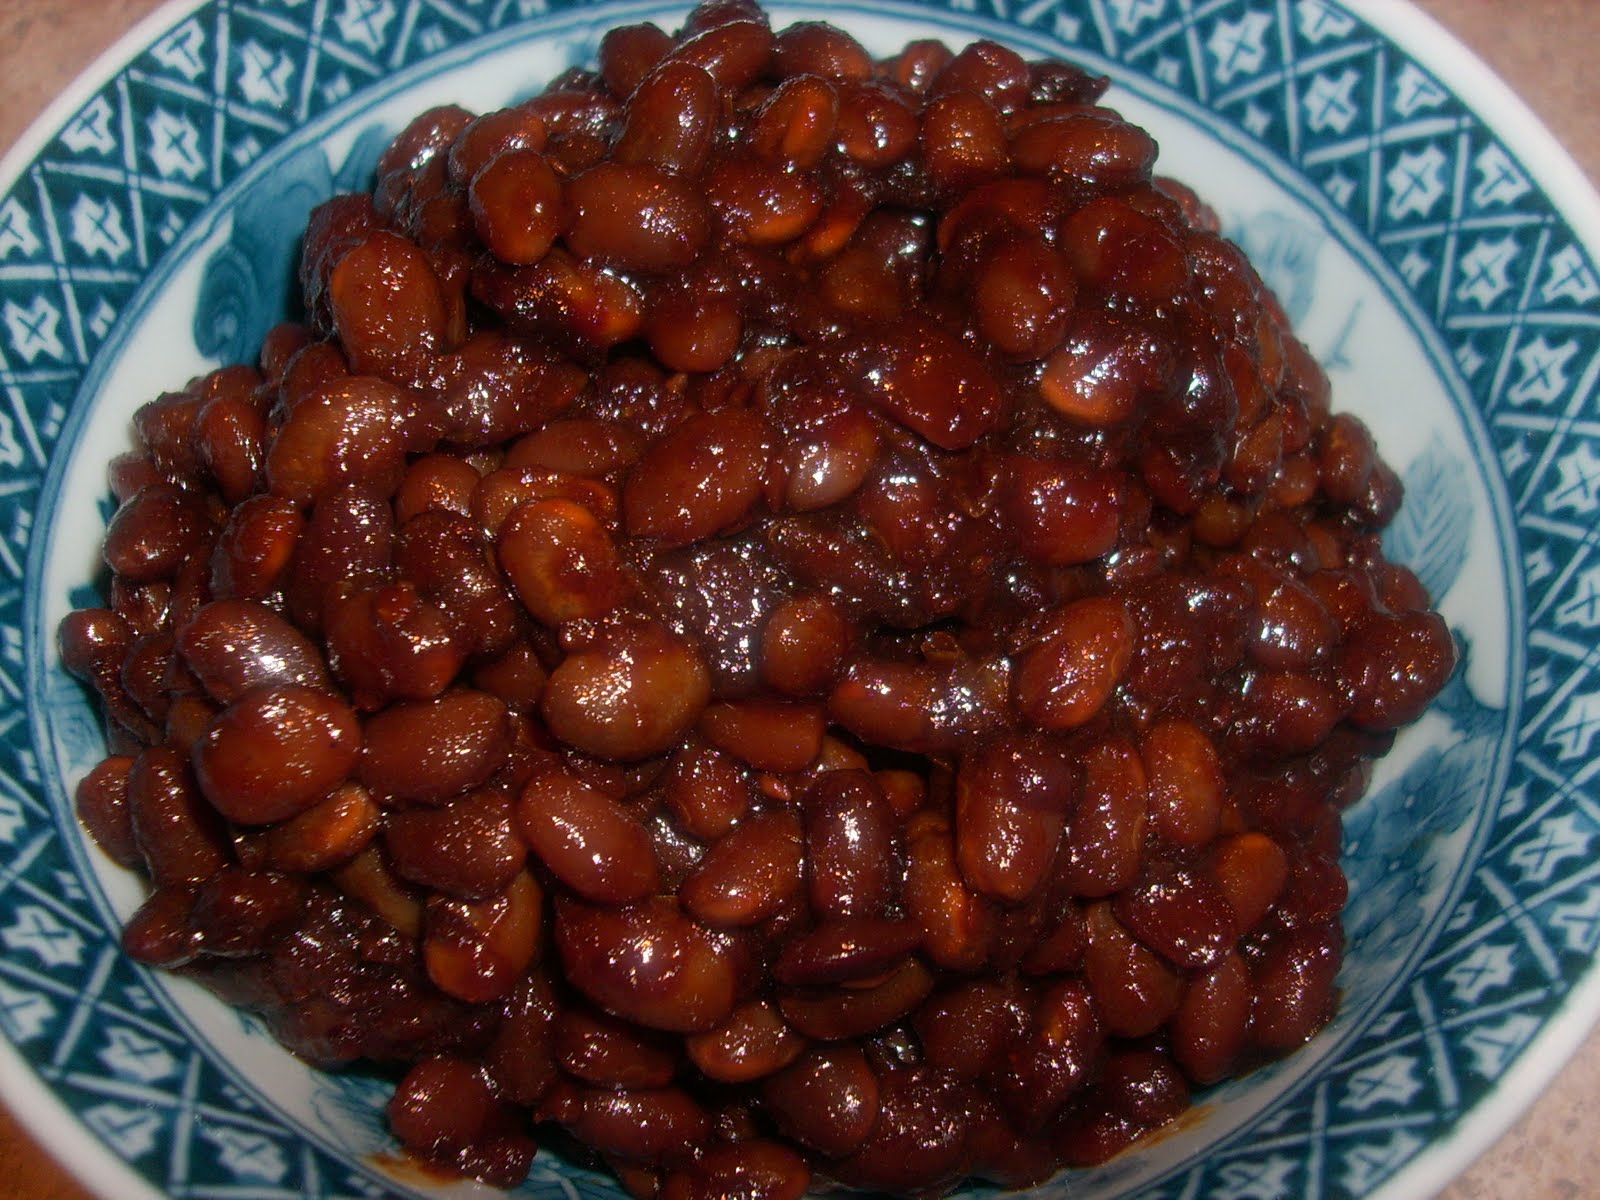 Boston Baked Beans | Cooking for Bliss